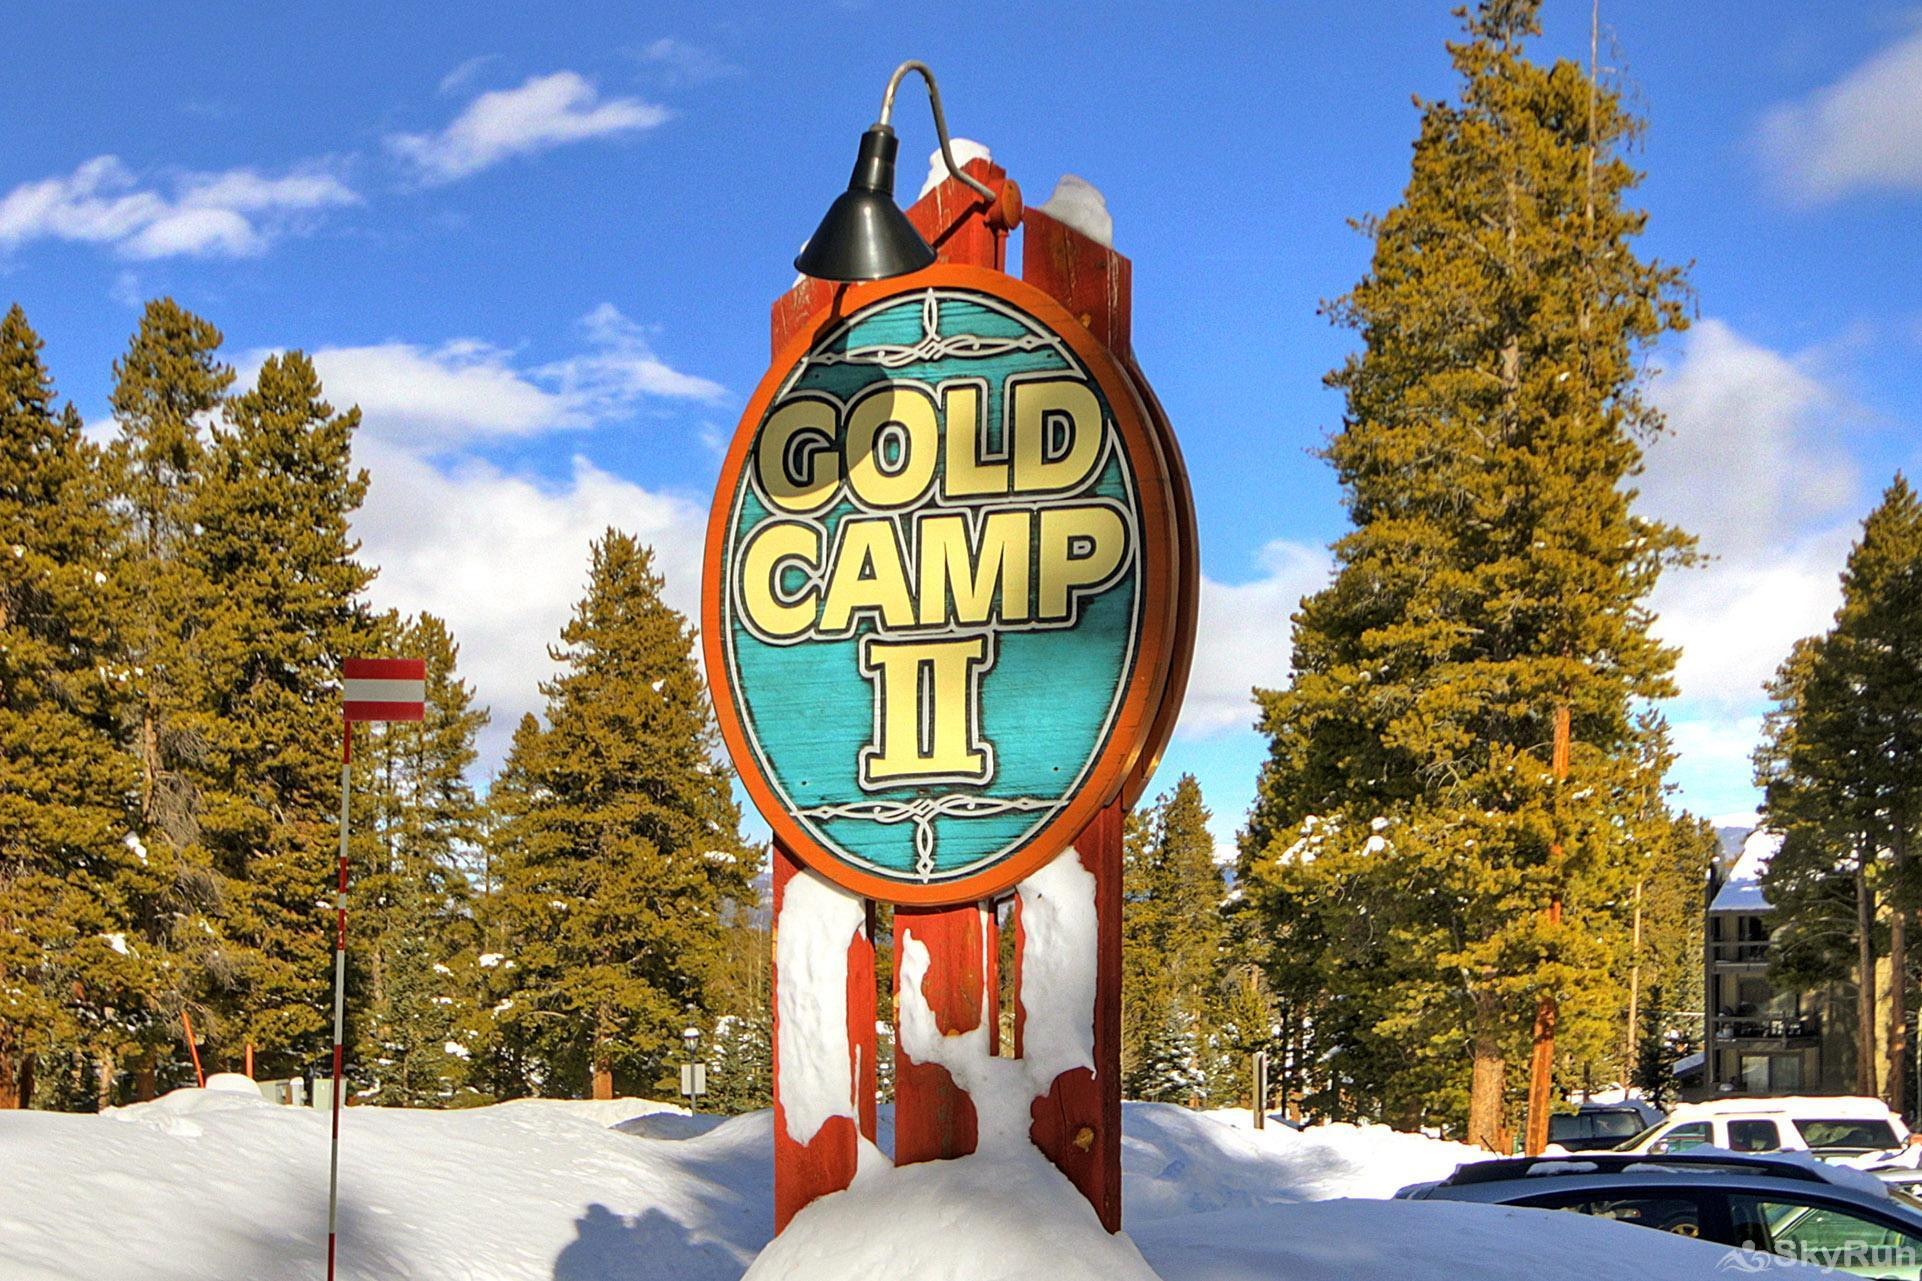 Gold Camp I131 Gold Camp Sign